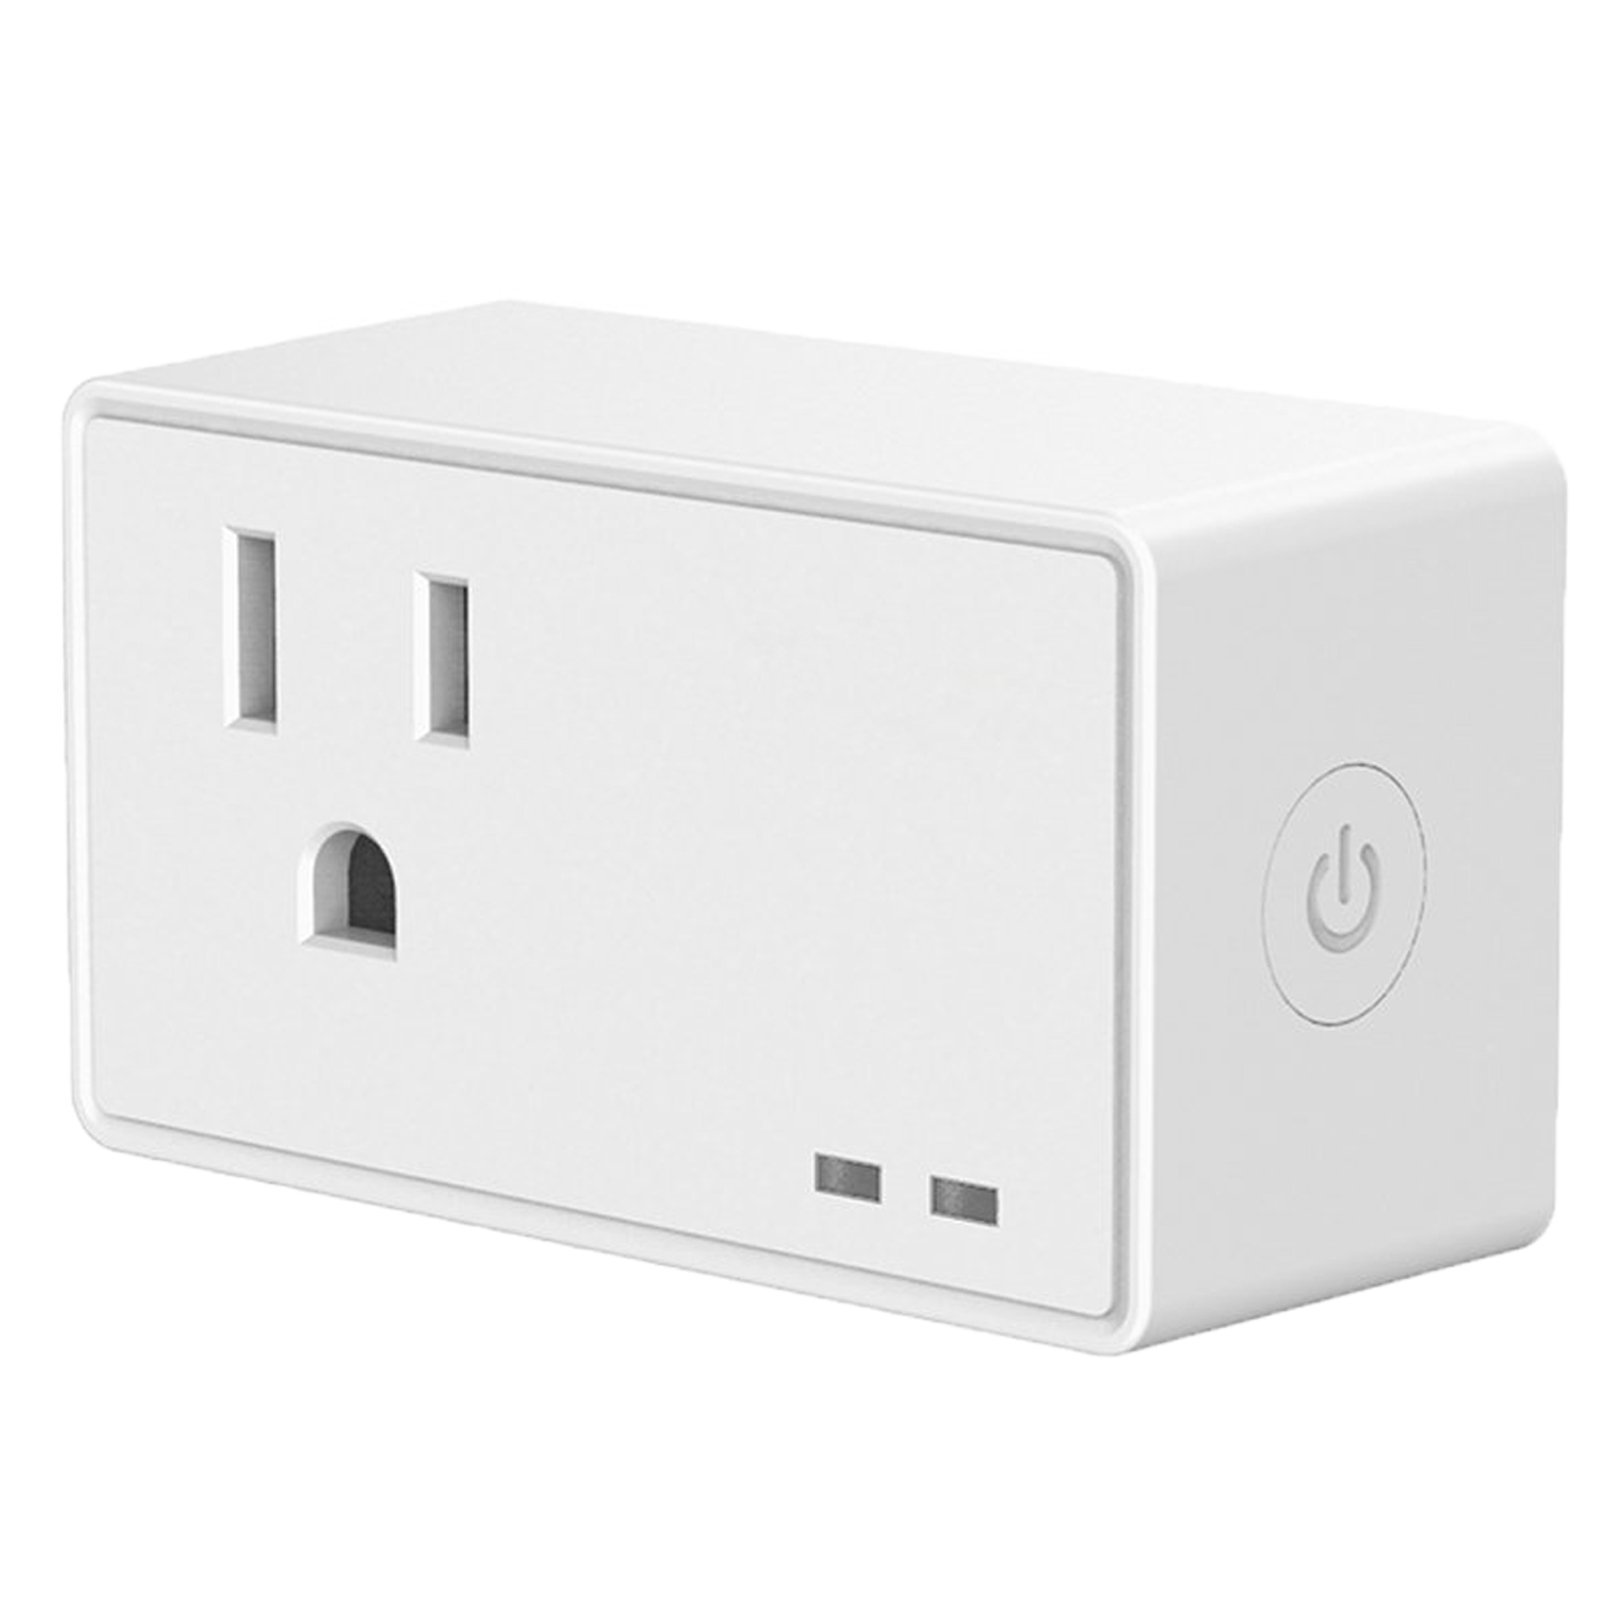 AVACOM WiFi Smart Plug, Compatible with Amazon Alexa Echo/Dot | Google Home | Works with Nest and IFTTT, Remote Voice and App Control from Anywhere, Wifi Remote Outlet, No Hub Required